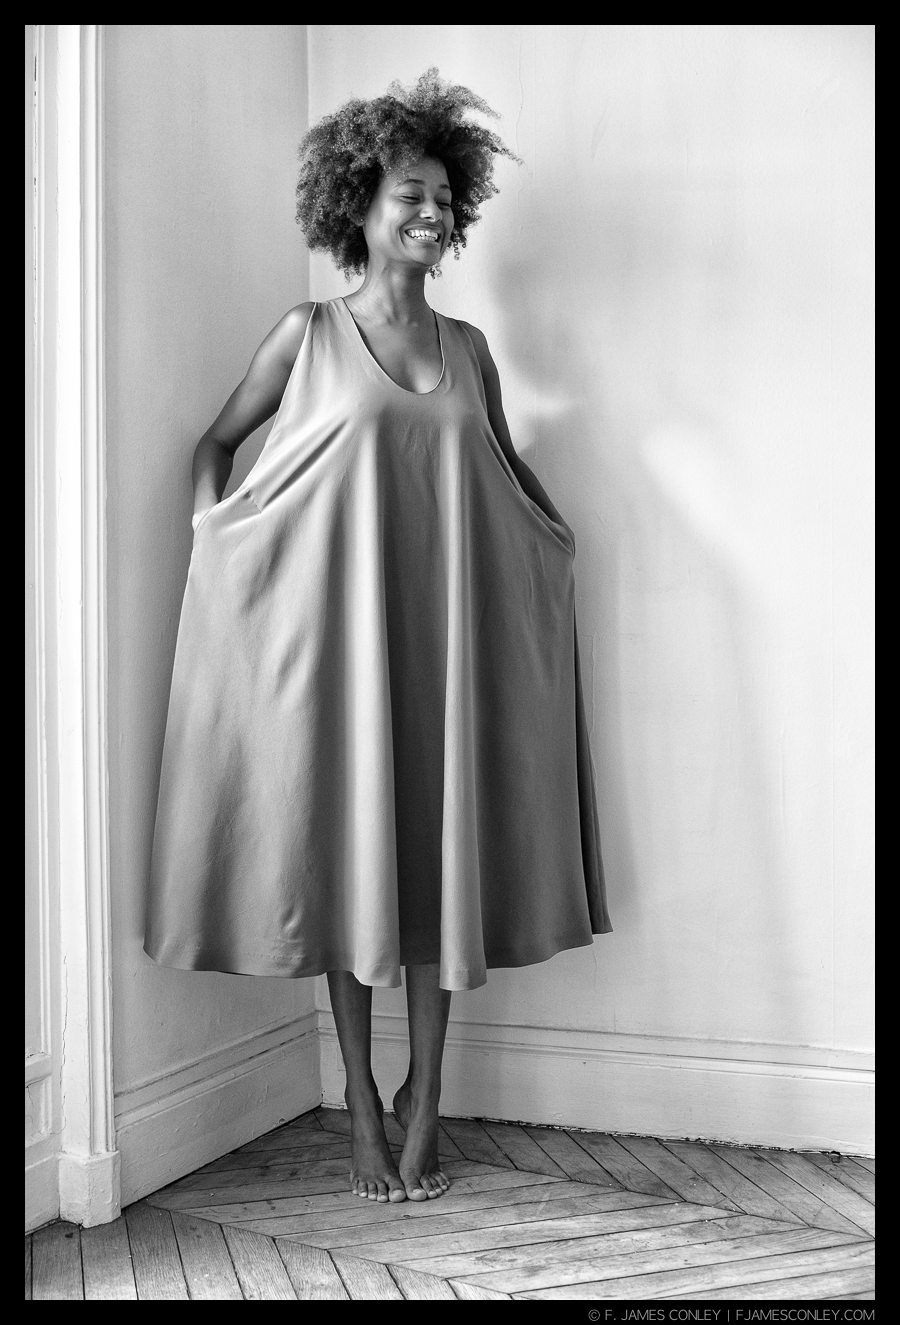 Working with CHV Design in Paris, the designer's primary concept with this dress was its drape—the way the fabric hangs and moves. Accordingly, the images about this dress emphasize its draping with movement.